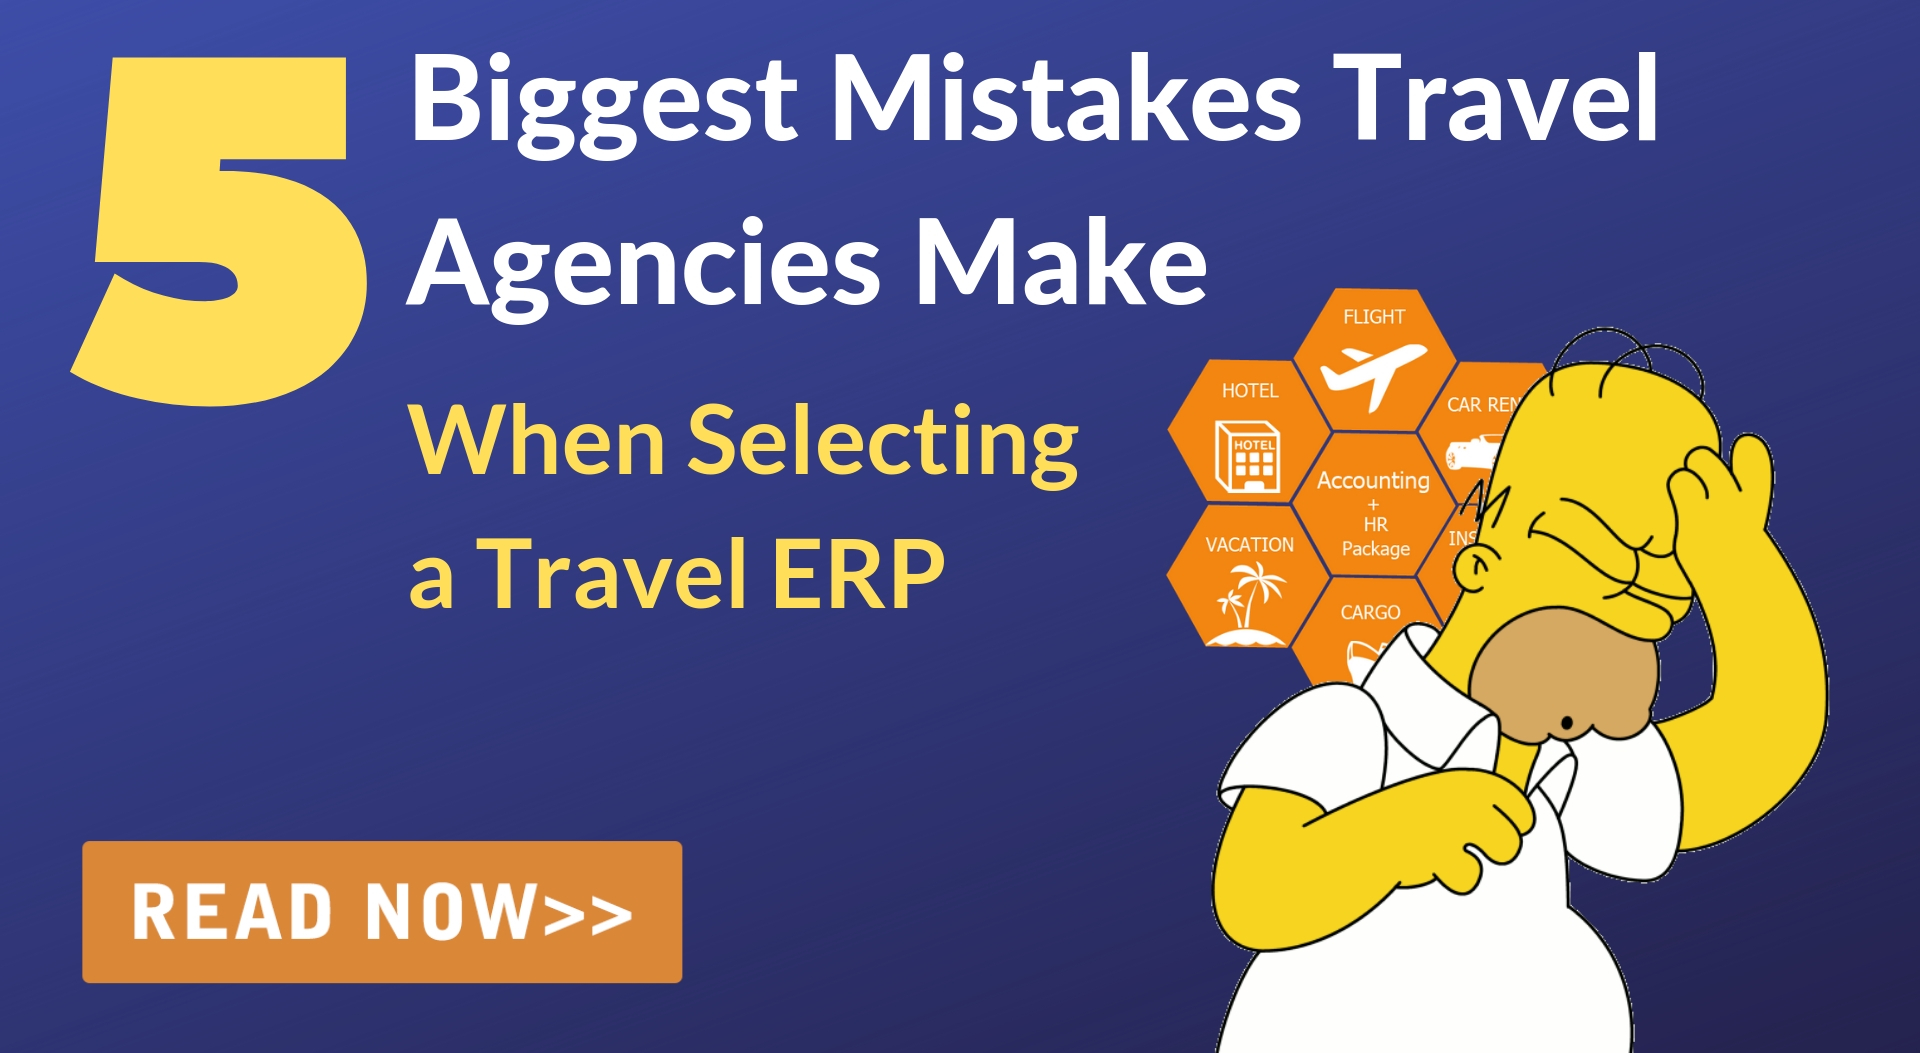 Biggest mistakes travel agencies make when buying a Travel ERP